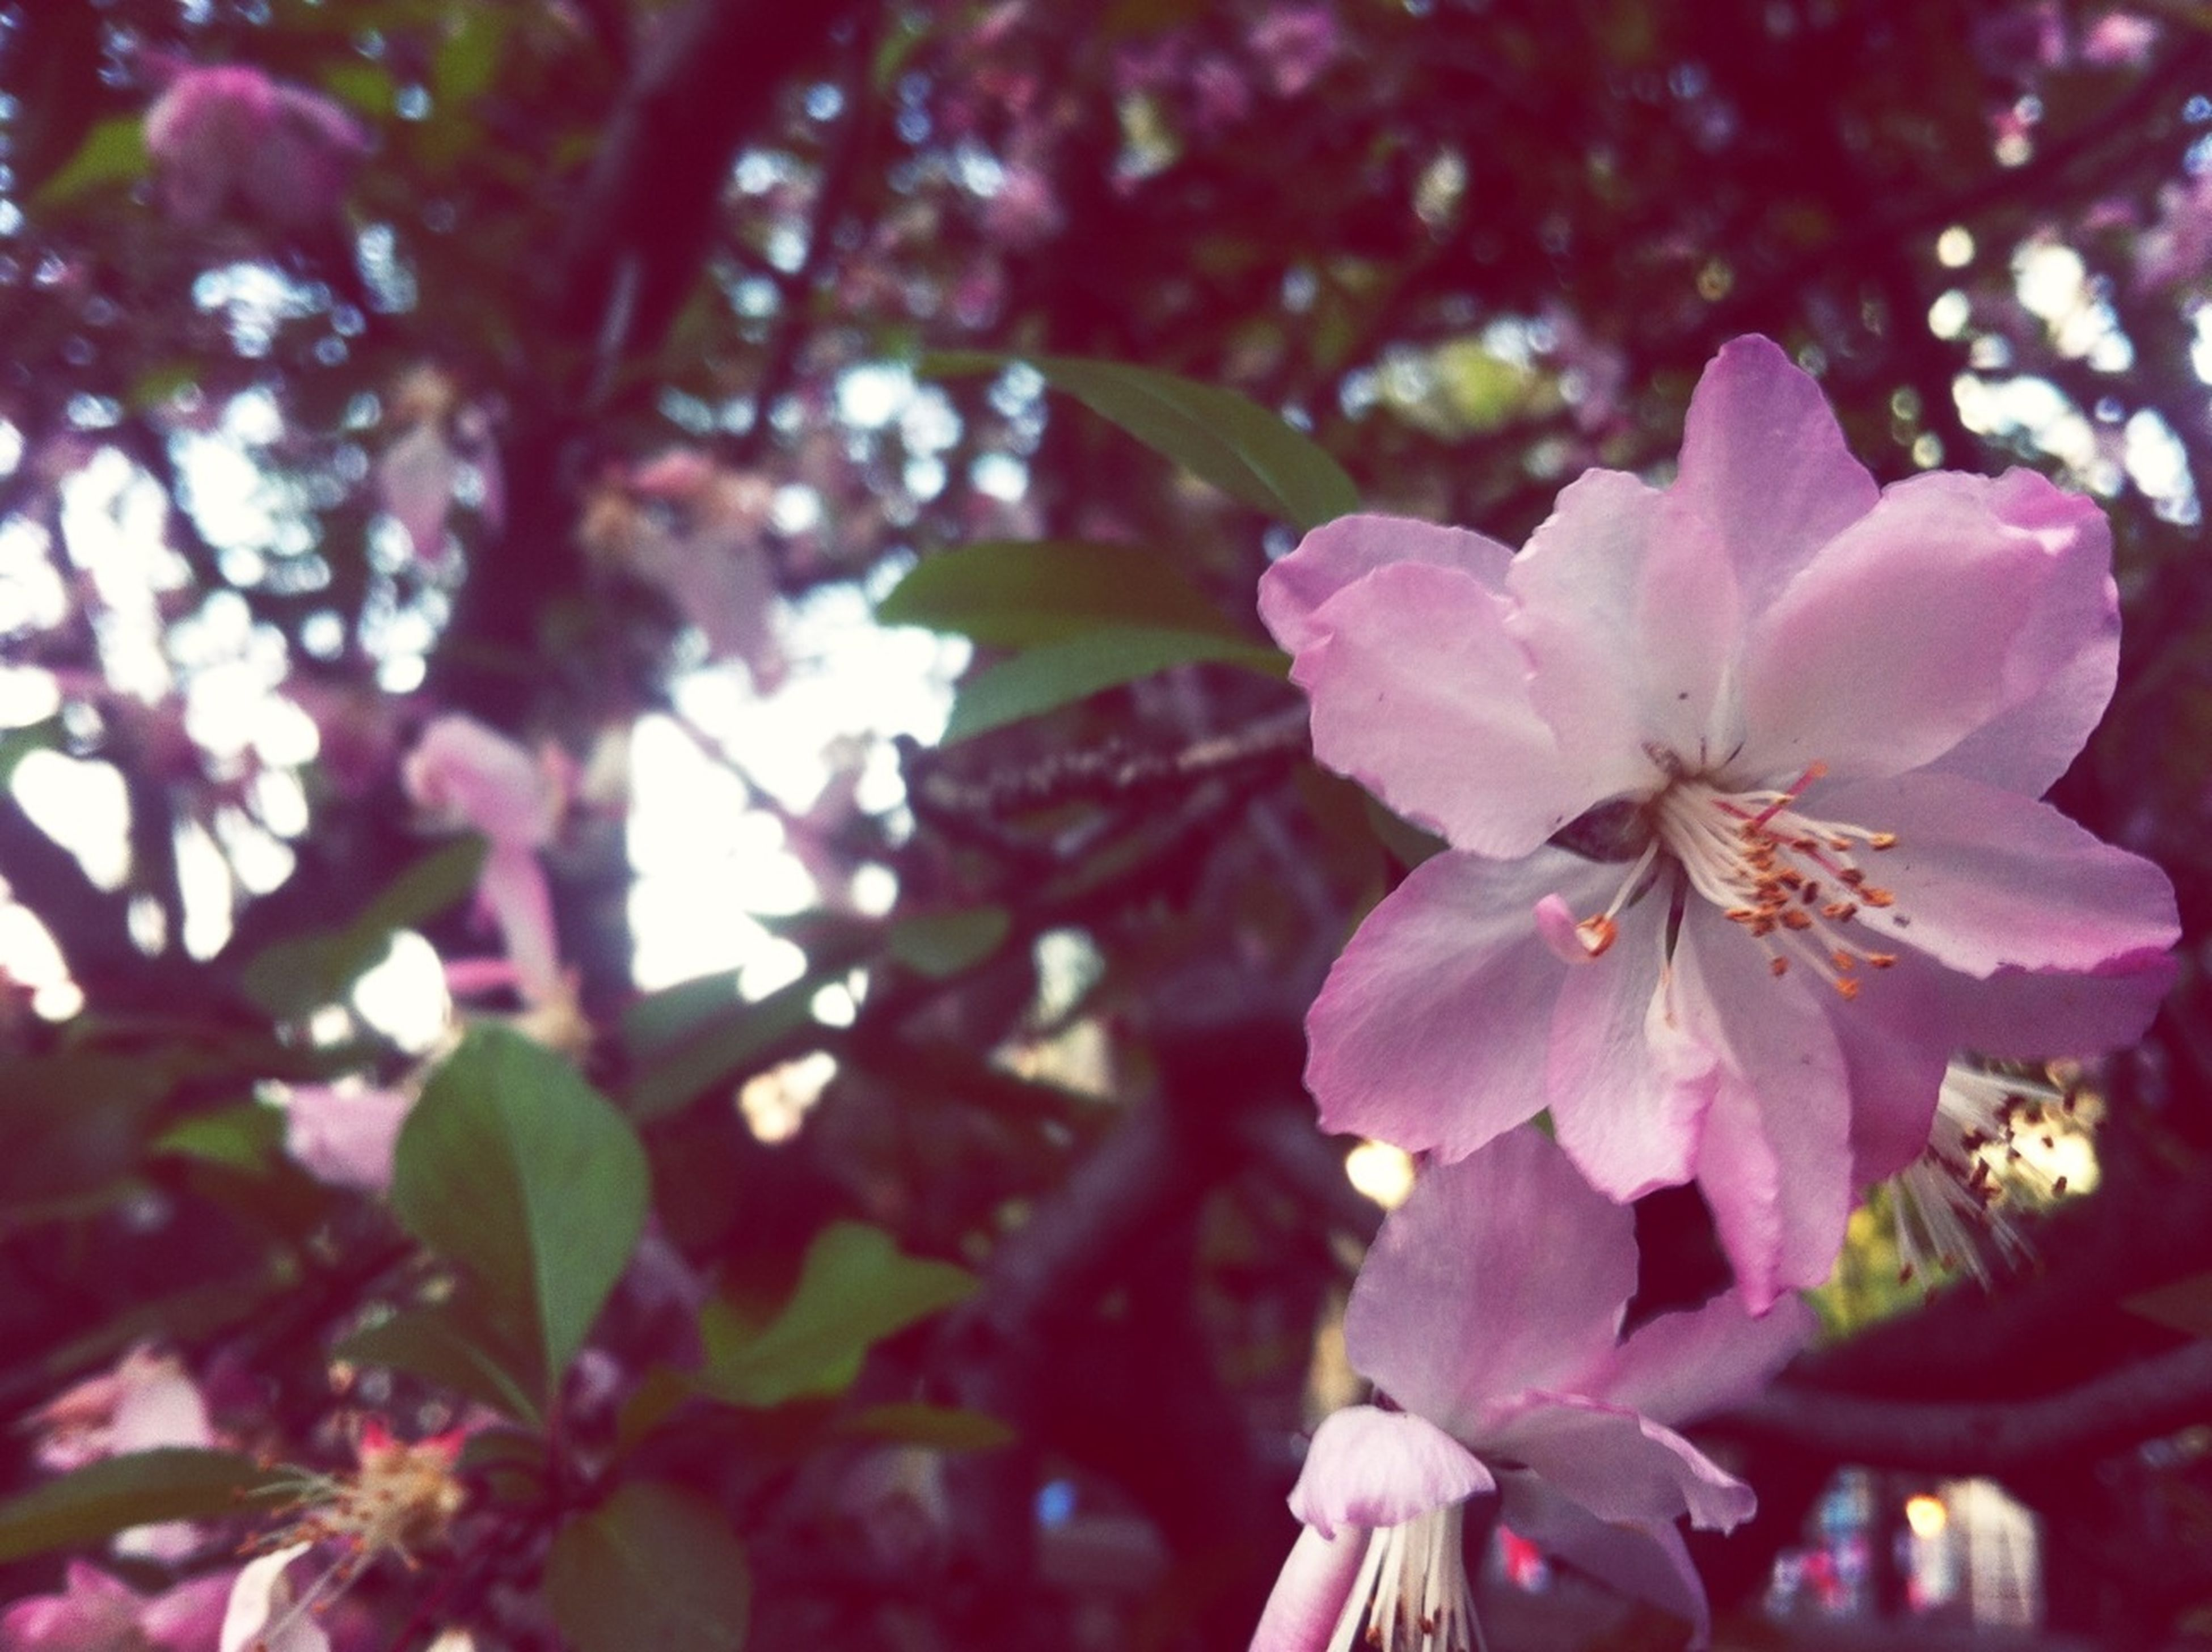 flower, freshness, growth, petal, pink color, fragility, beauty in nature, focus on foreground, close-up, nature, blooming, flower head, tree, branch, in bloom, blossom, plant, day, outdoors, park - man made space